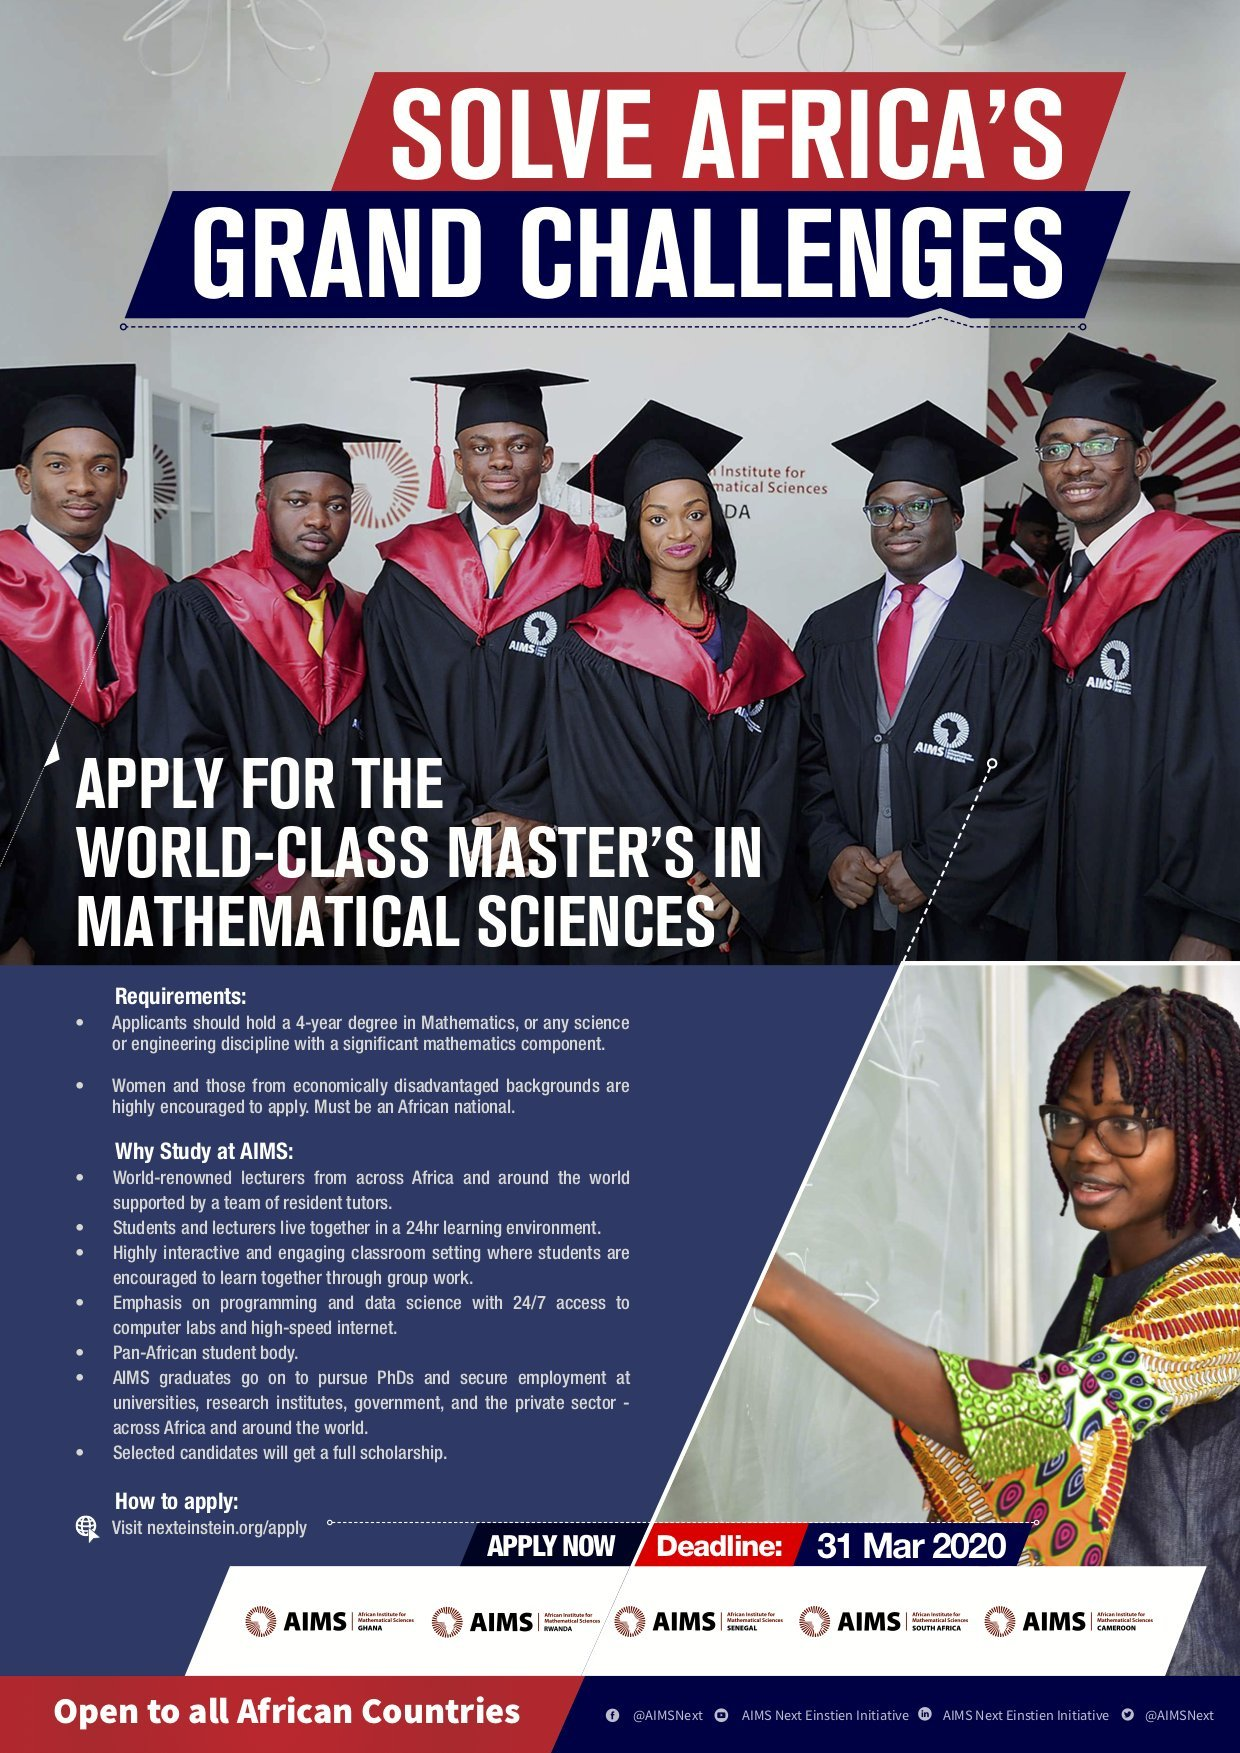 AIMS Master's Degree in Mathematical Sciences